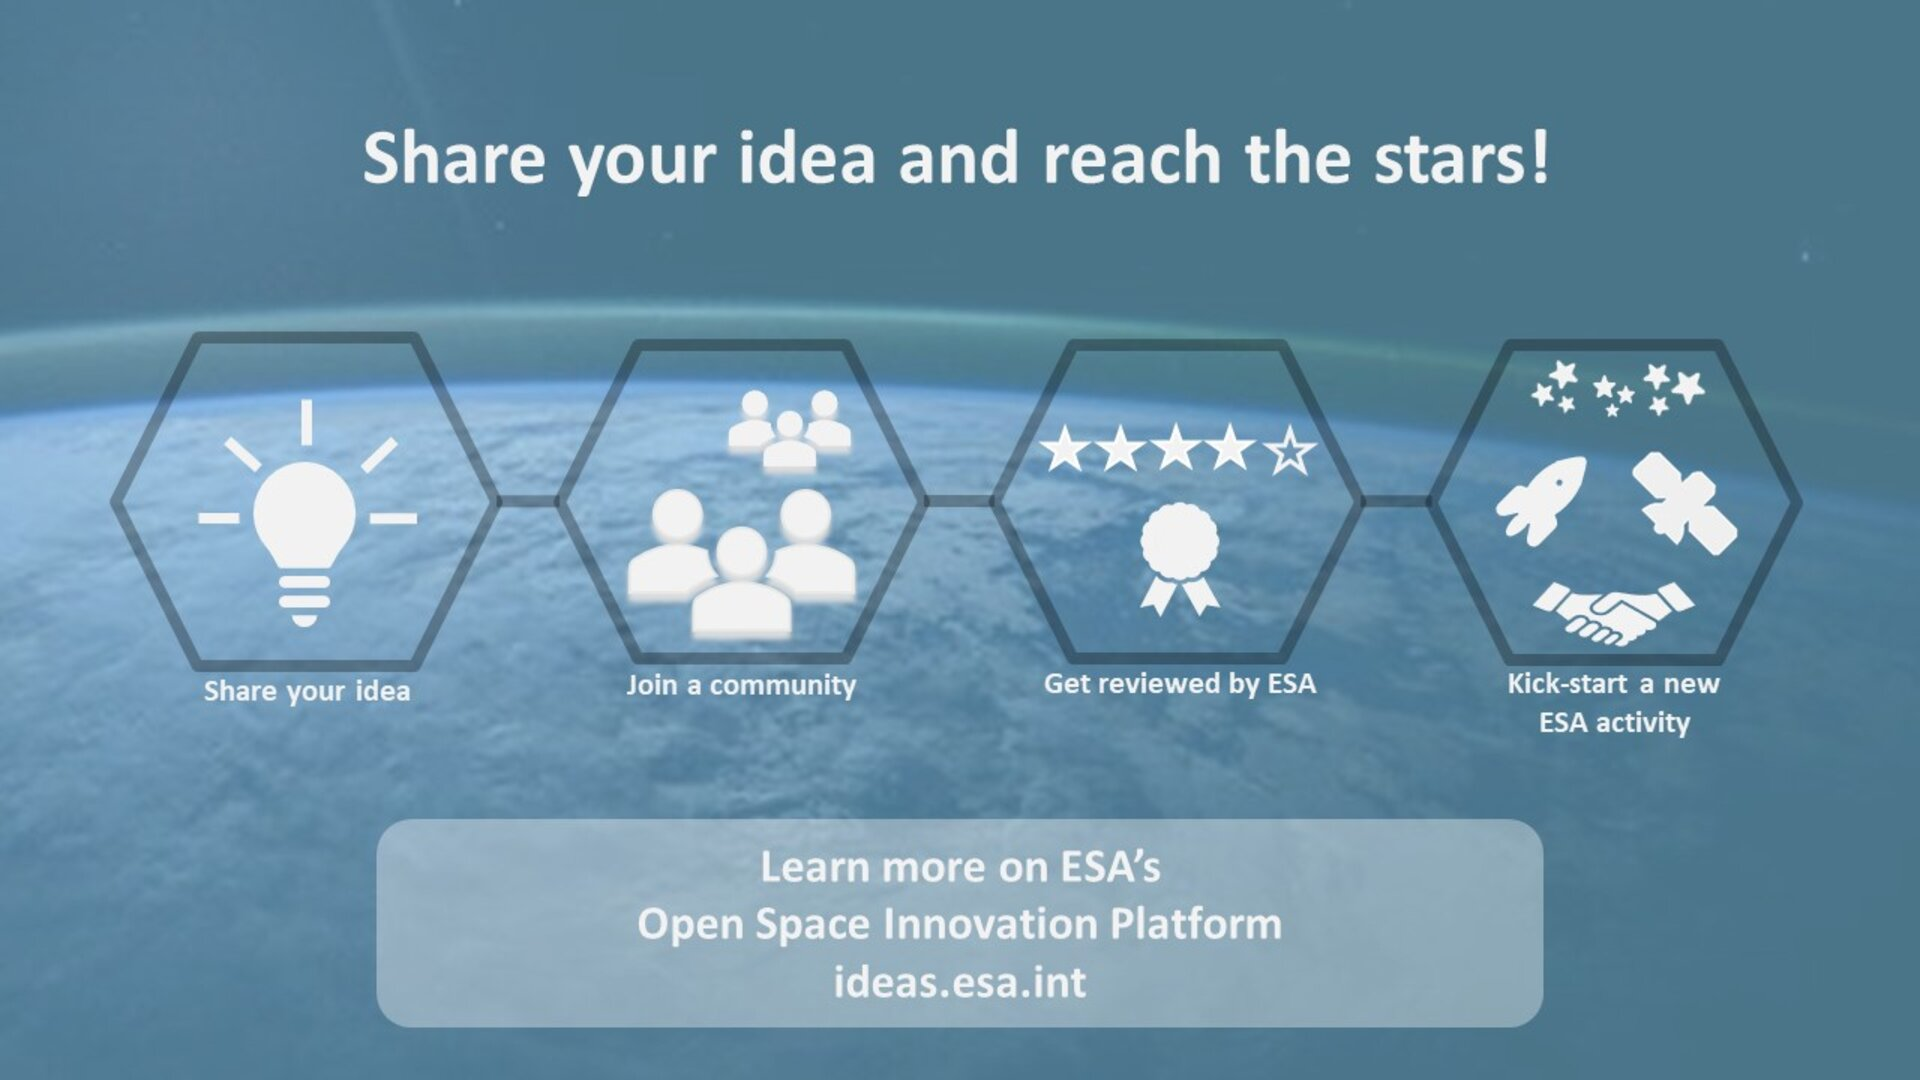 The Open Space Innovation Platform